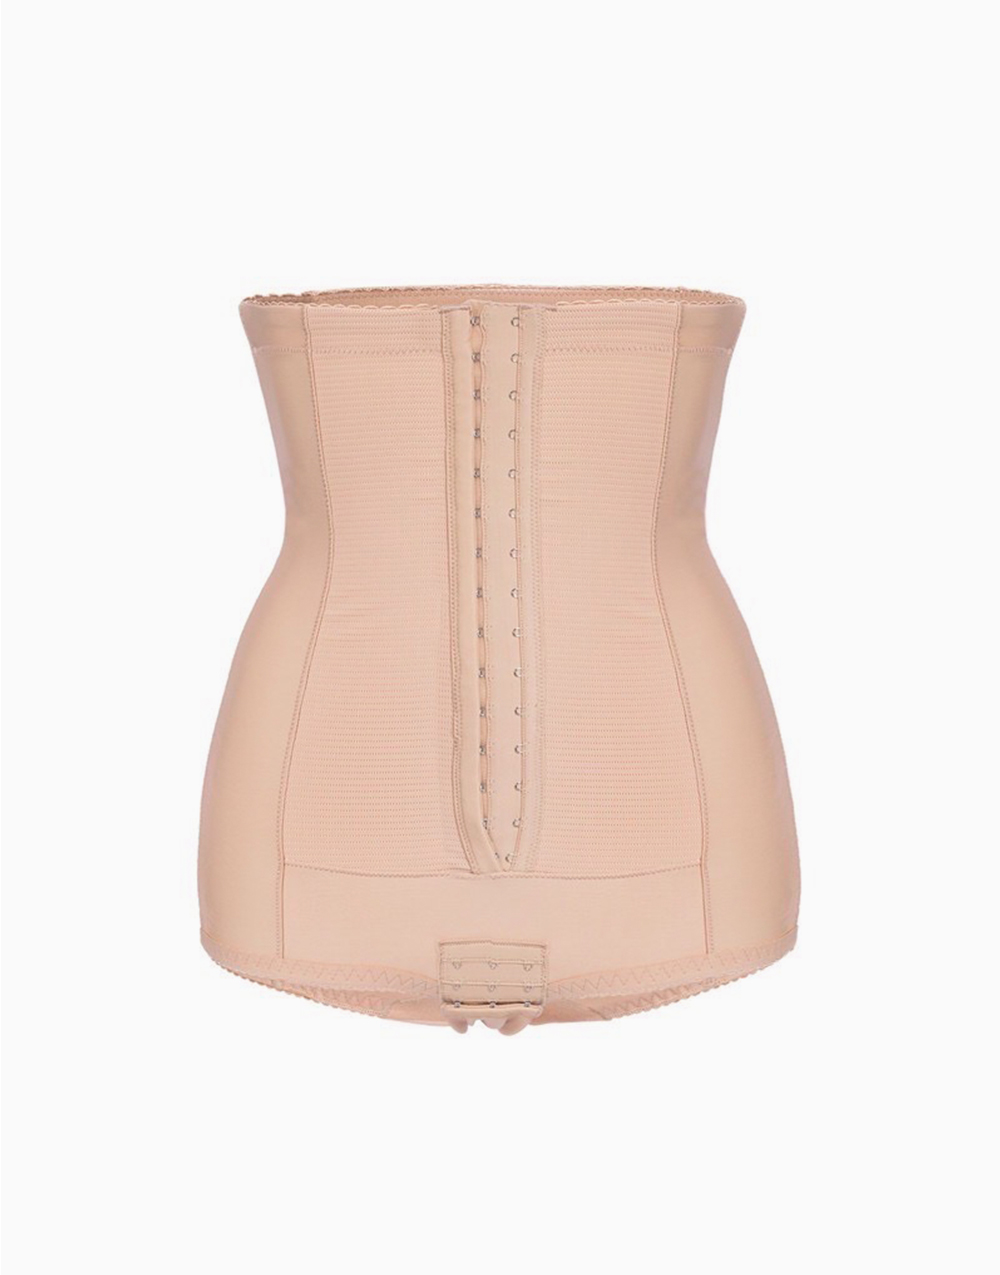 DIANNE Post Partum Recovery Shapewear - Nude by Shapewear Solutions | Large